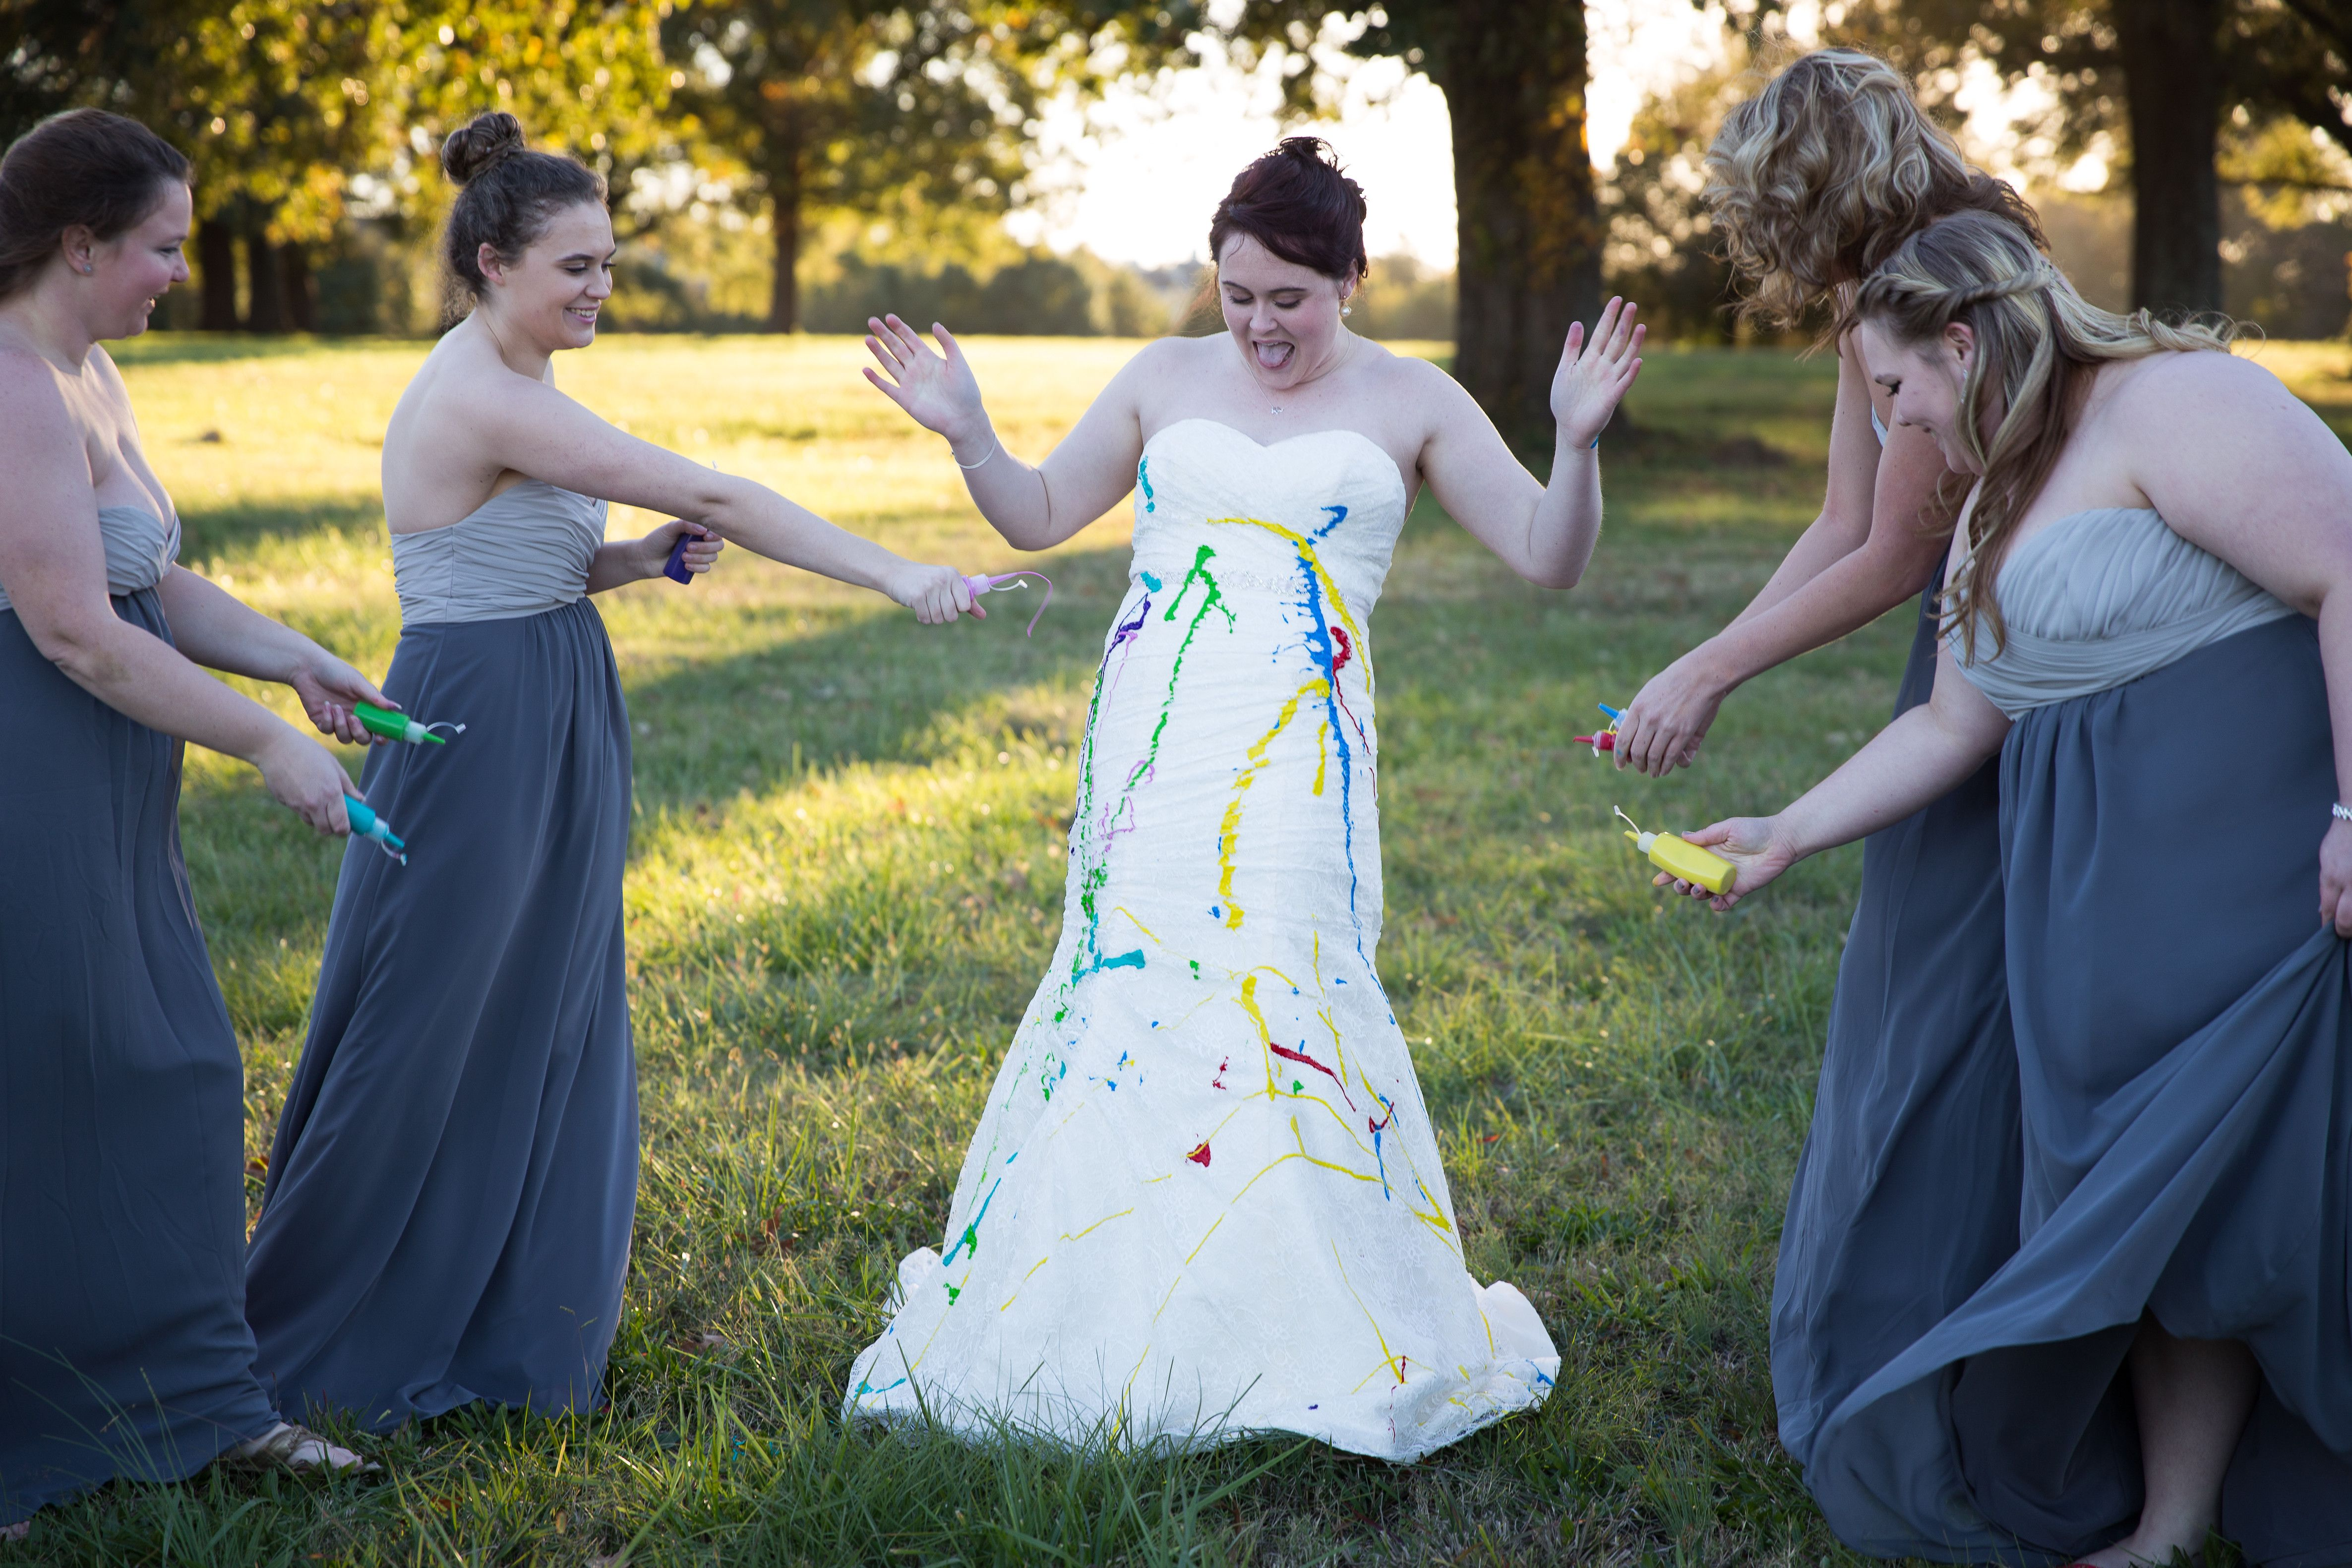 Bride Trashes Gown In Badass Photoshoot After Her Fiance Called Off The Wedding